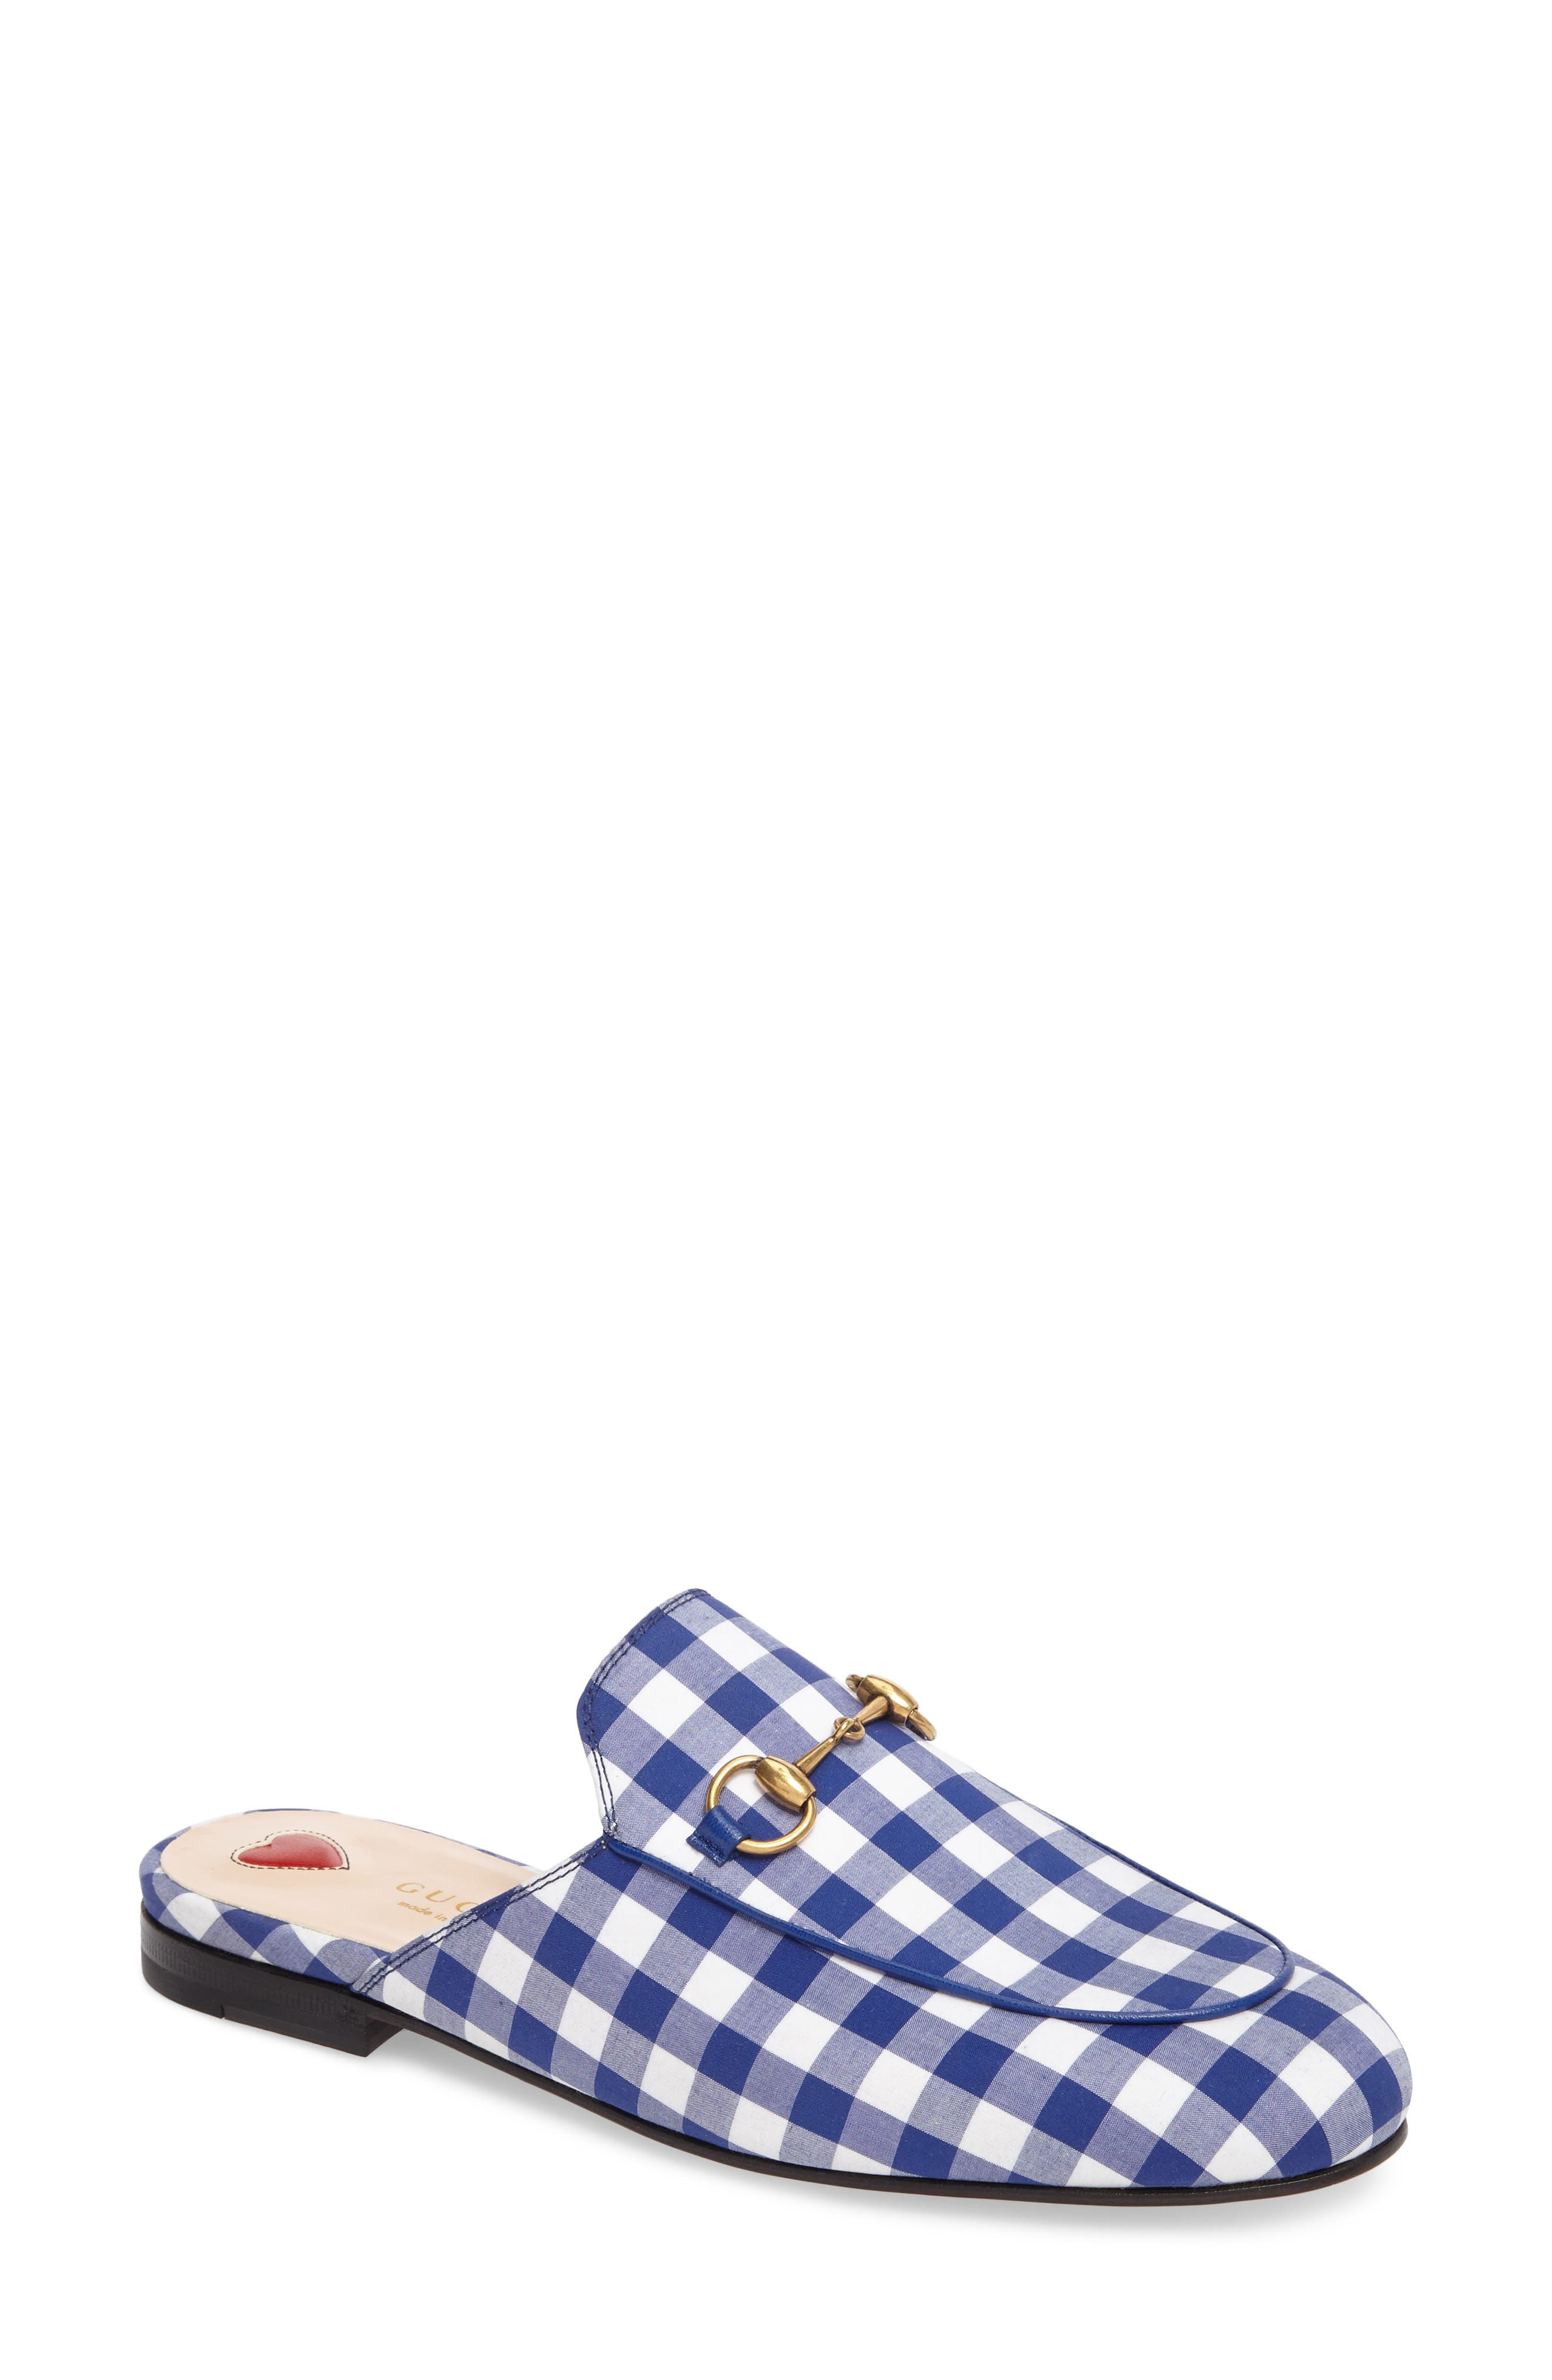 Princetown Gingham Loafer Mule,                             Main thumbnail 1, color,                             White/ Electric Blue